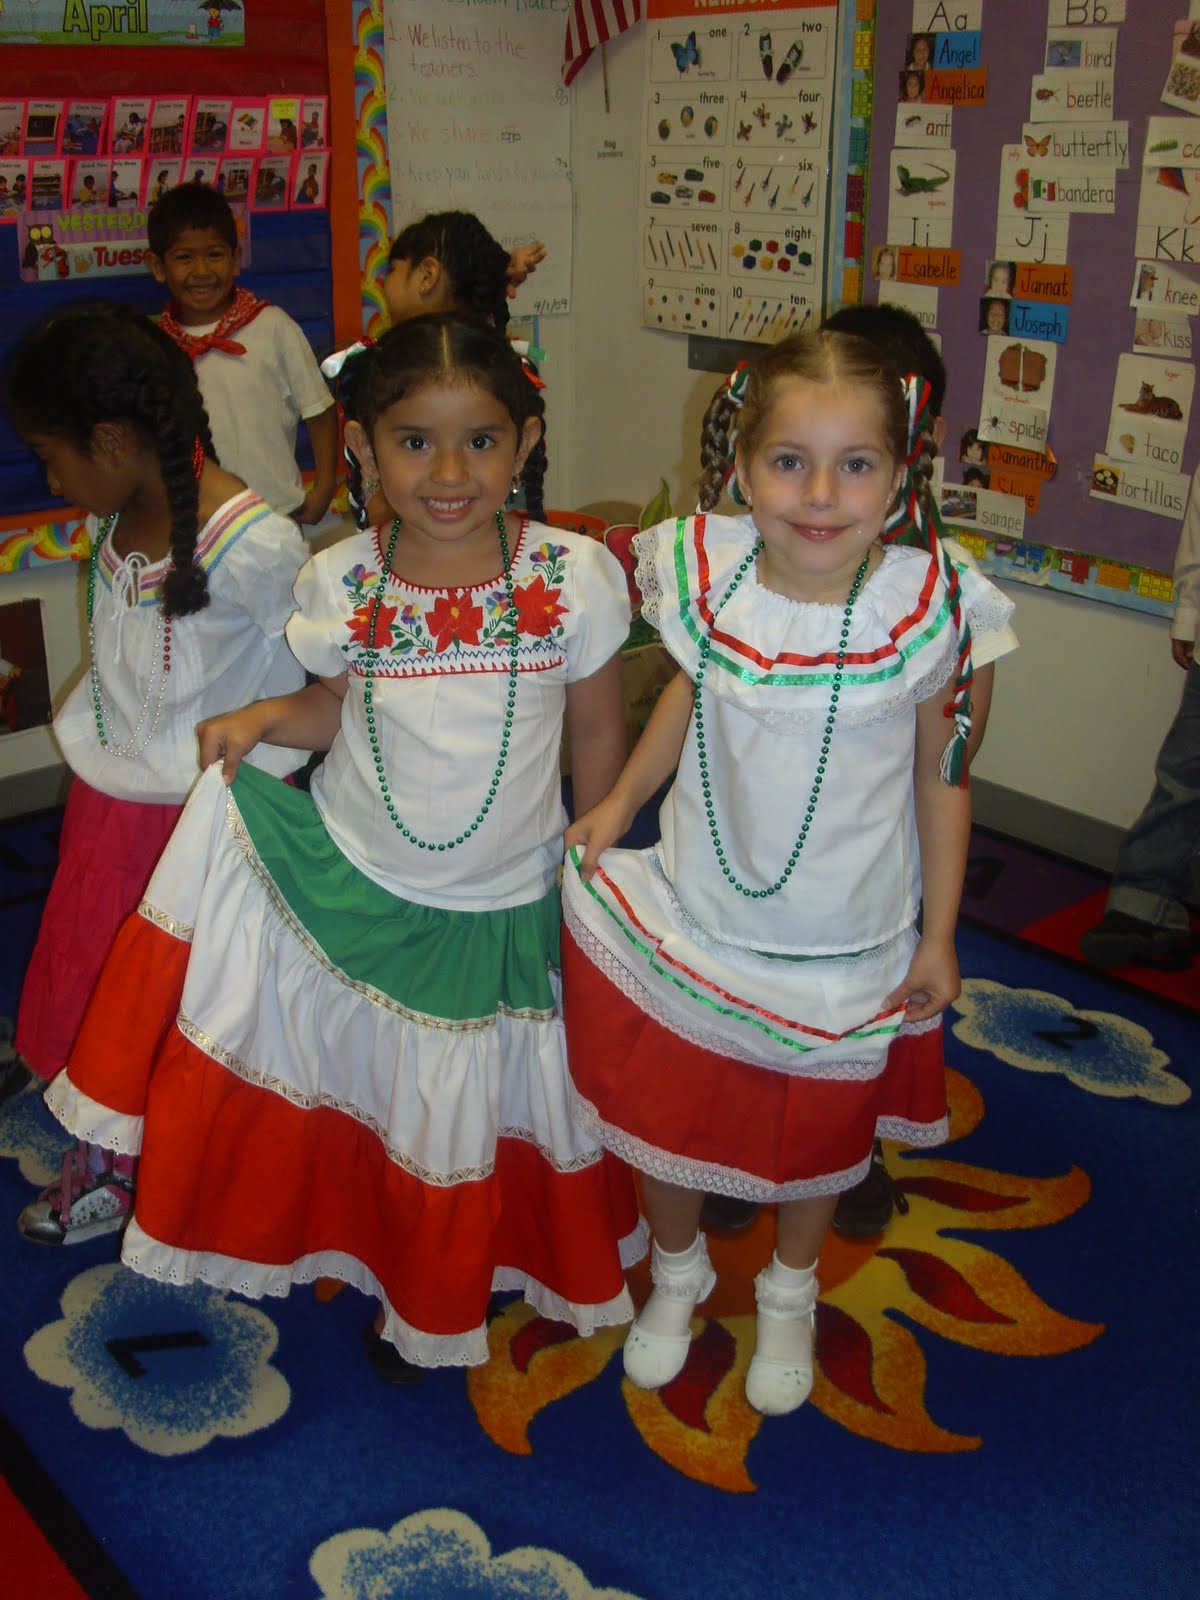 Find and save ideas about Mexican clothing on Pinterest. | See more ideas about Mexican outfit, Mexican fashion and Mexican embroidered dress. Women's fashion. Mexican clothing Mexican Costumes (for Men, Women, Kids) Find this Pin and more on Costumes by Trista Buskohl. Costumes and Vintage Clothing in Dallas and Plano, TX.